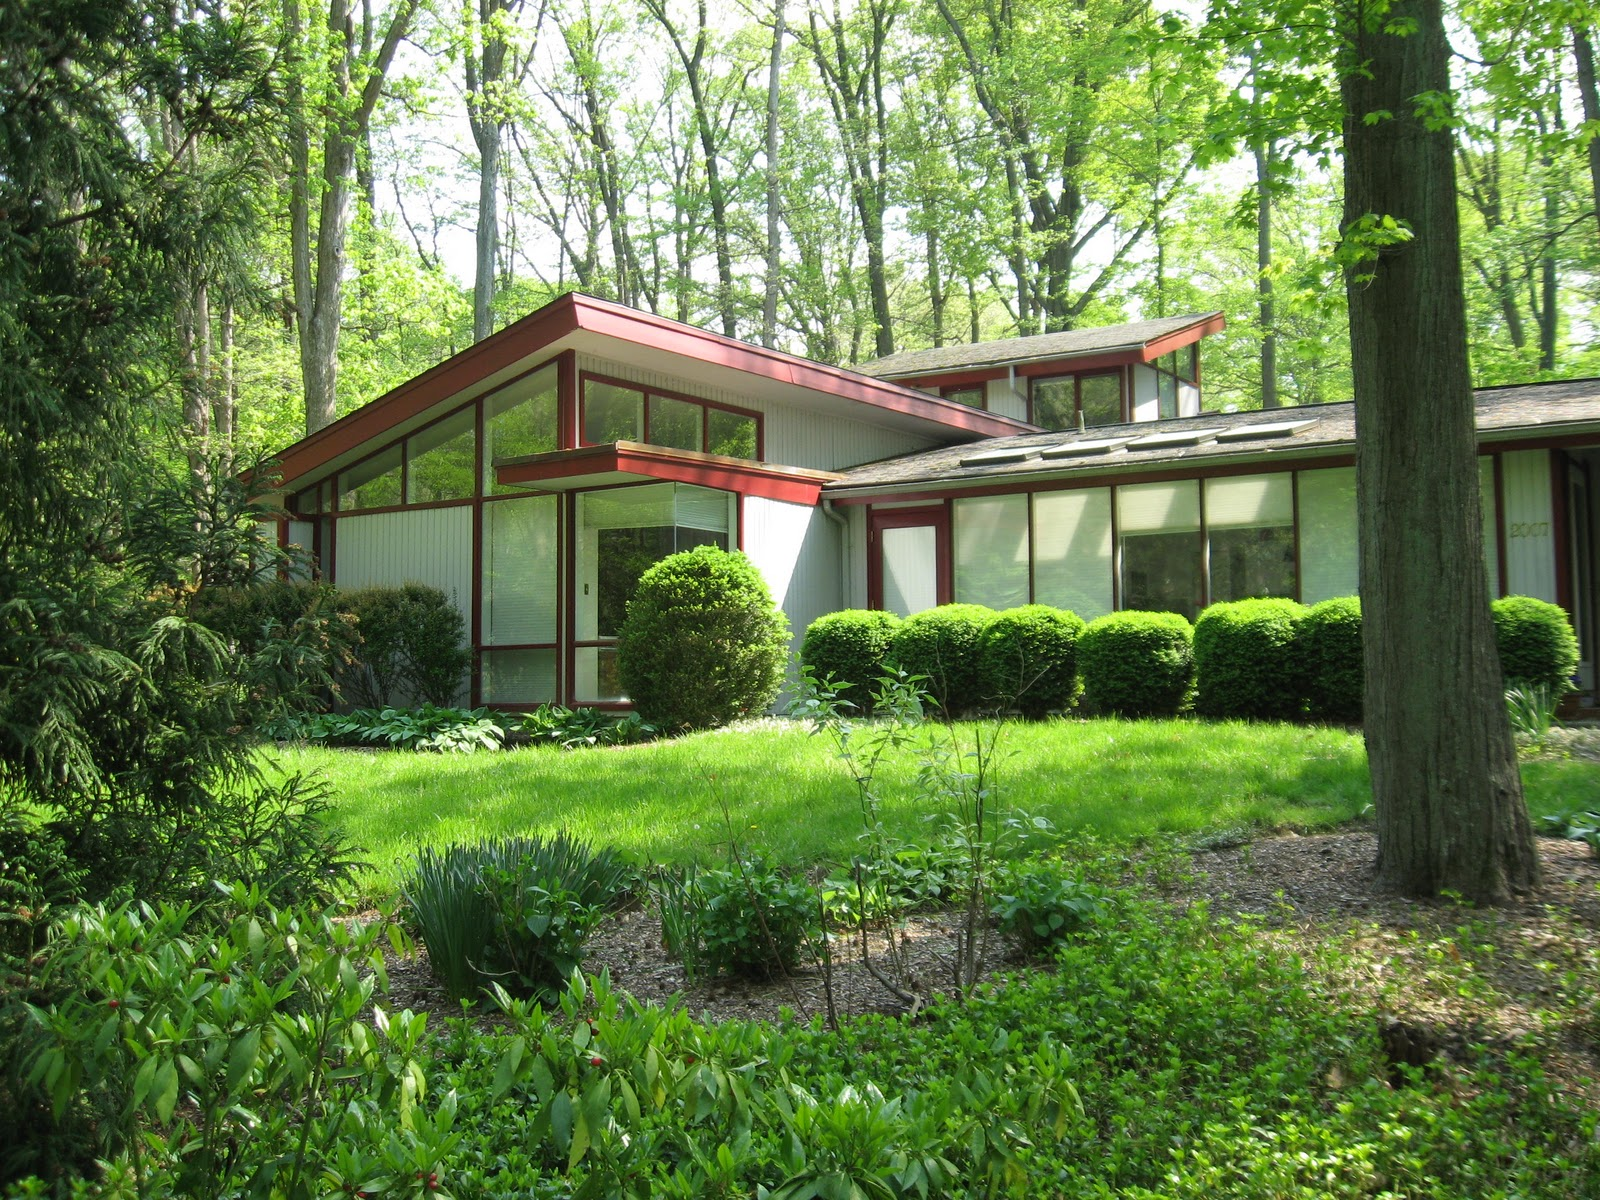 Braxton and yancey mid century modern homes for Mid century modern prefab homes